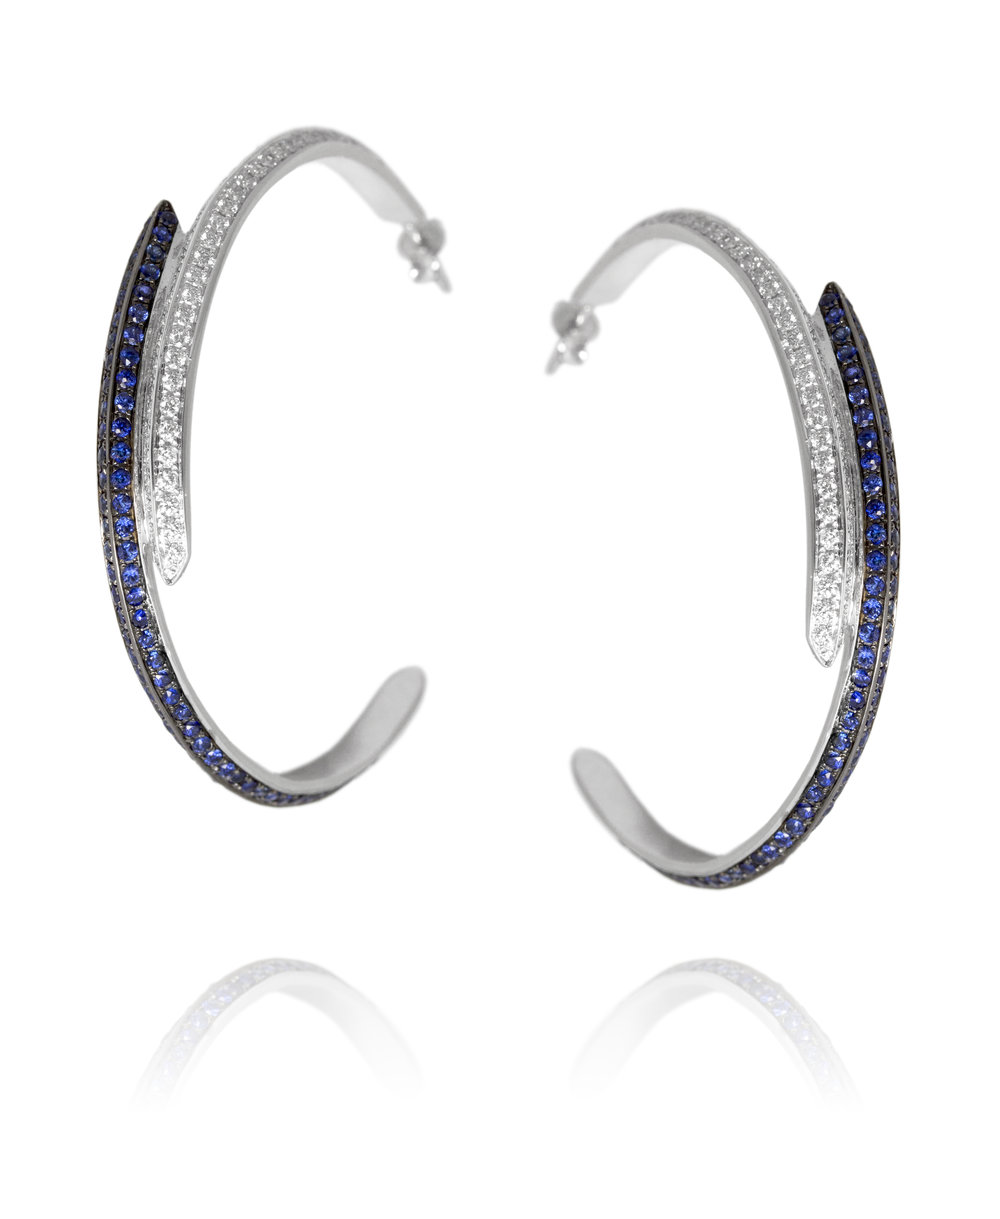 Earrings  18KT White Gold, Diamonds, Sapphires  REF. MOH145